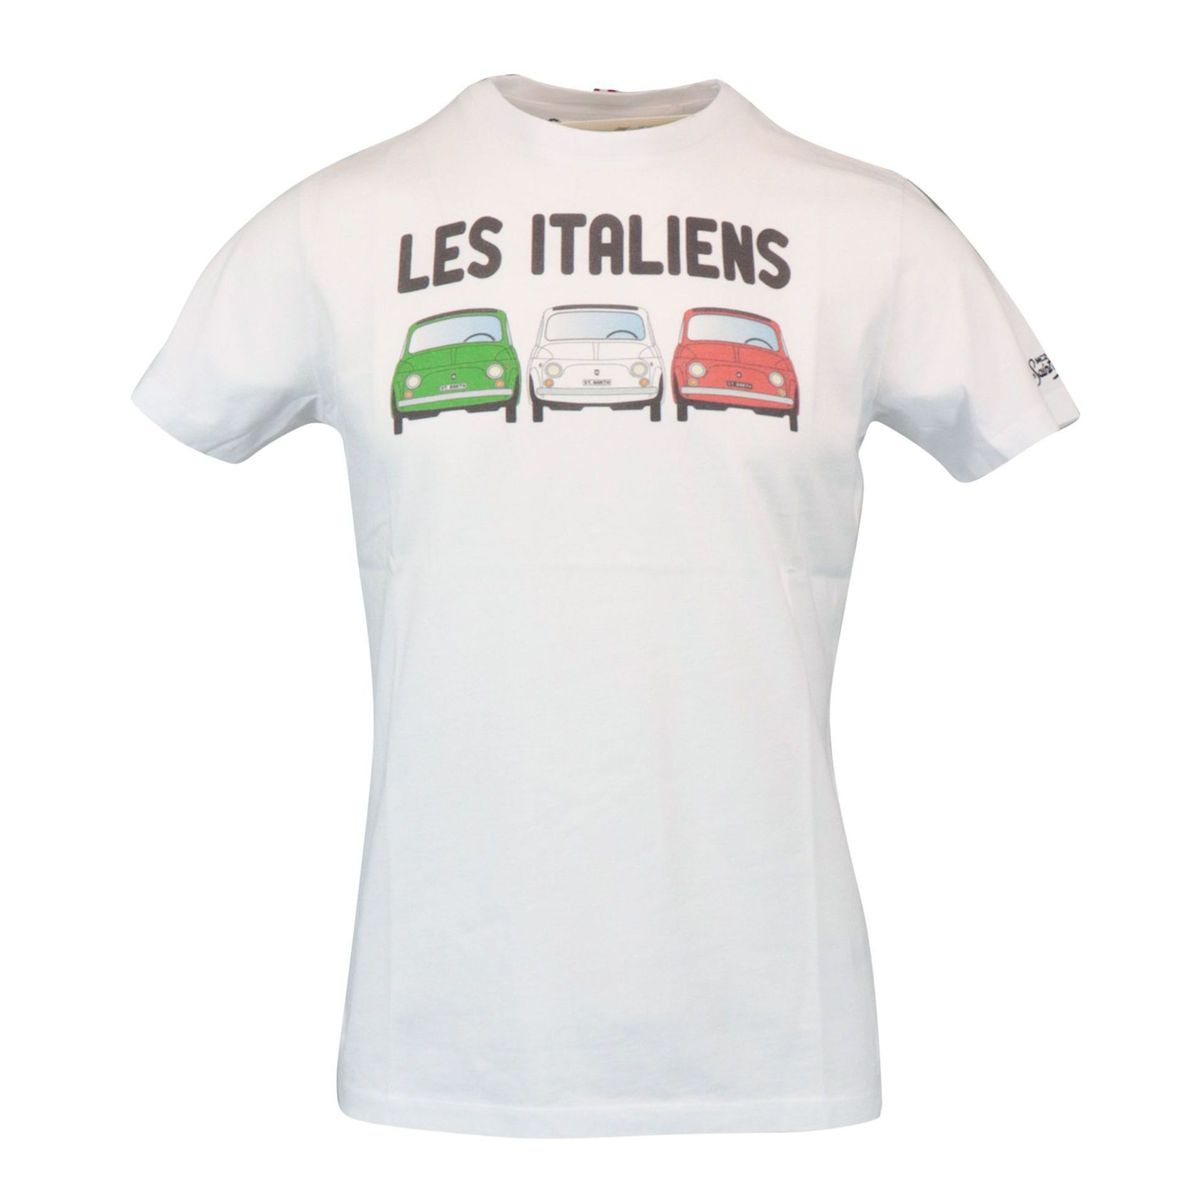 Les Italien cotton t-shirt White MC2 Saint Barth